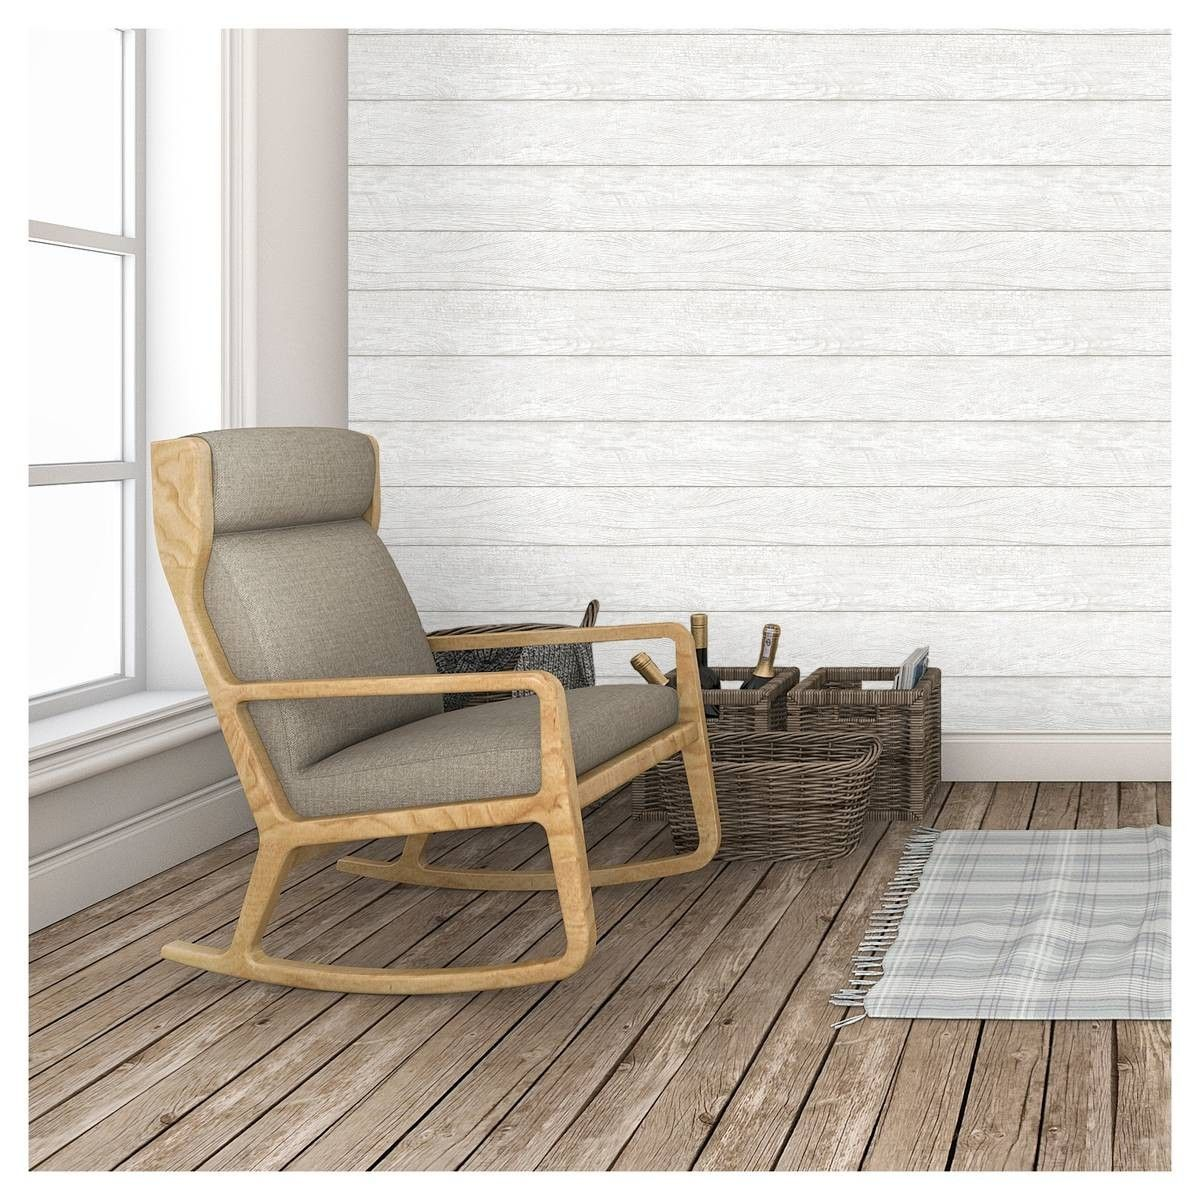 Peel and stick shiplap from Target Ikea shopping